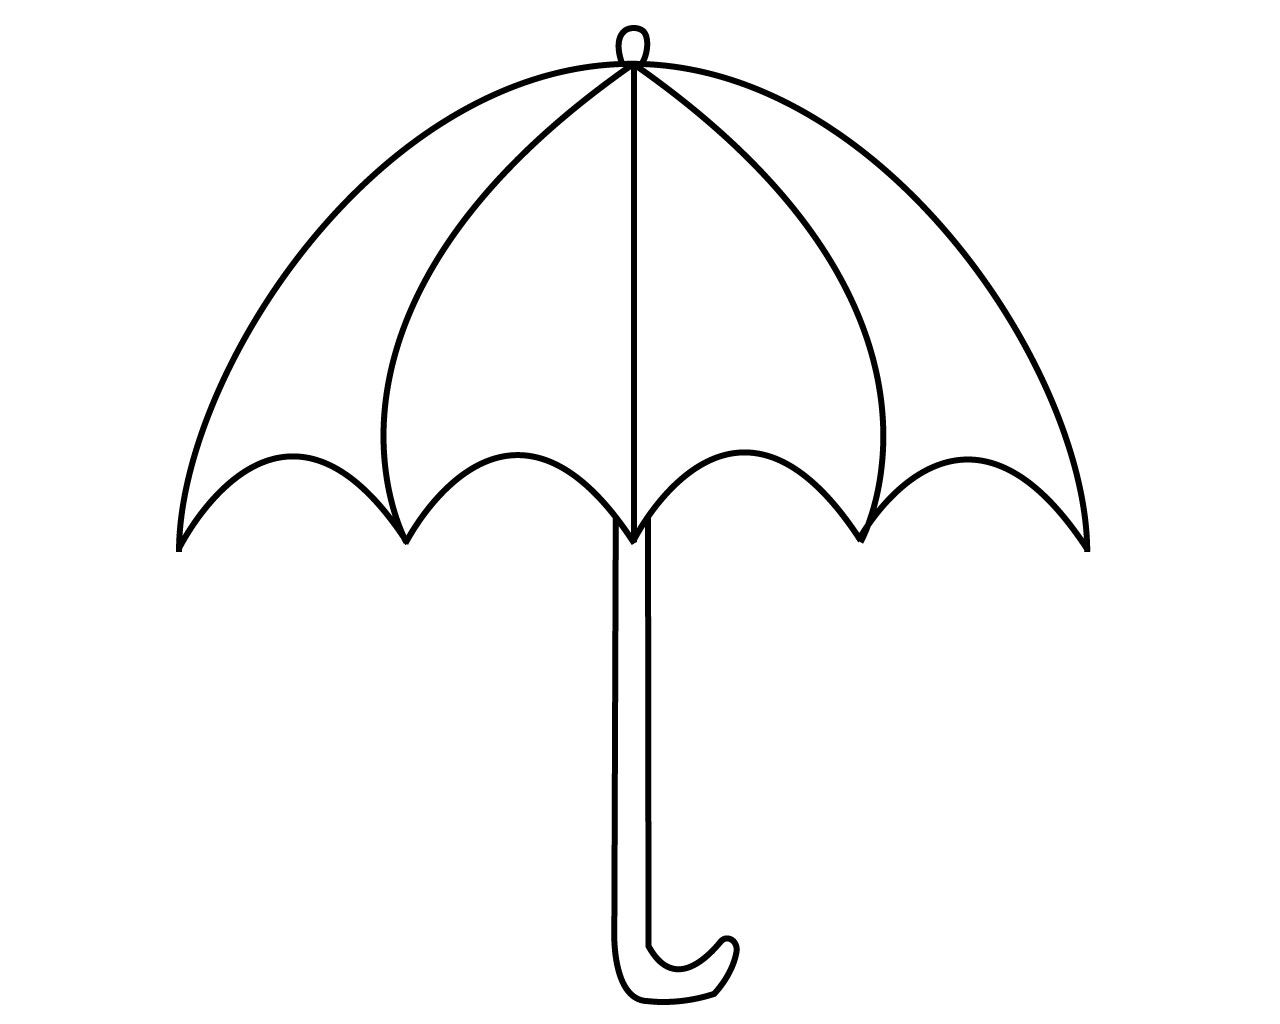 Umbrella Coloring Pages Free Umbrella Coloring Page Coloring Pages Umbrella